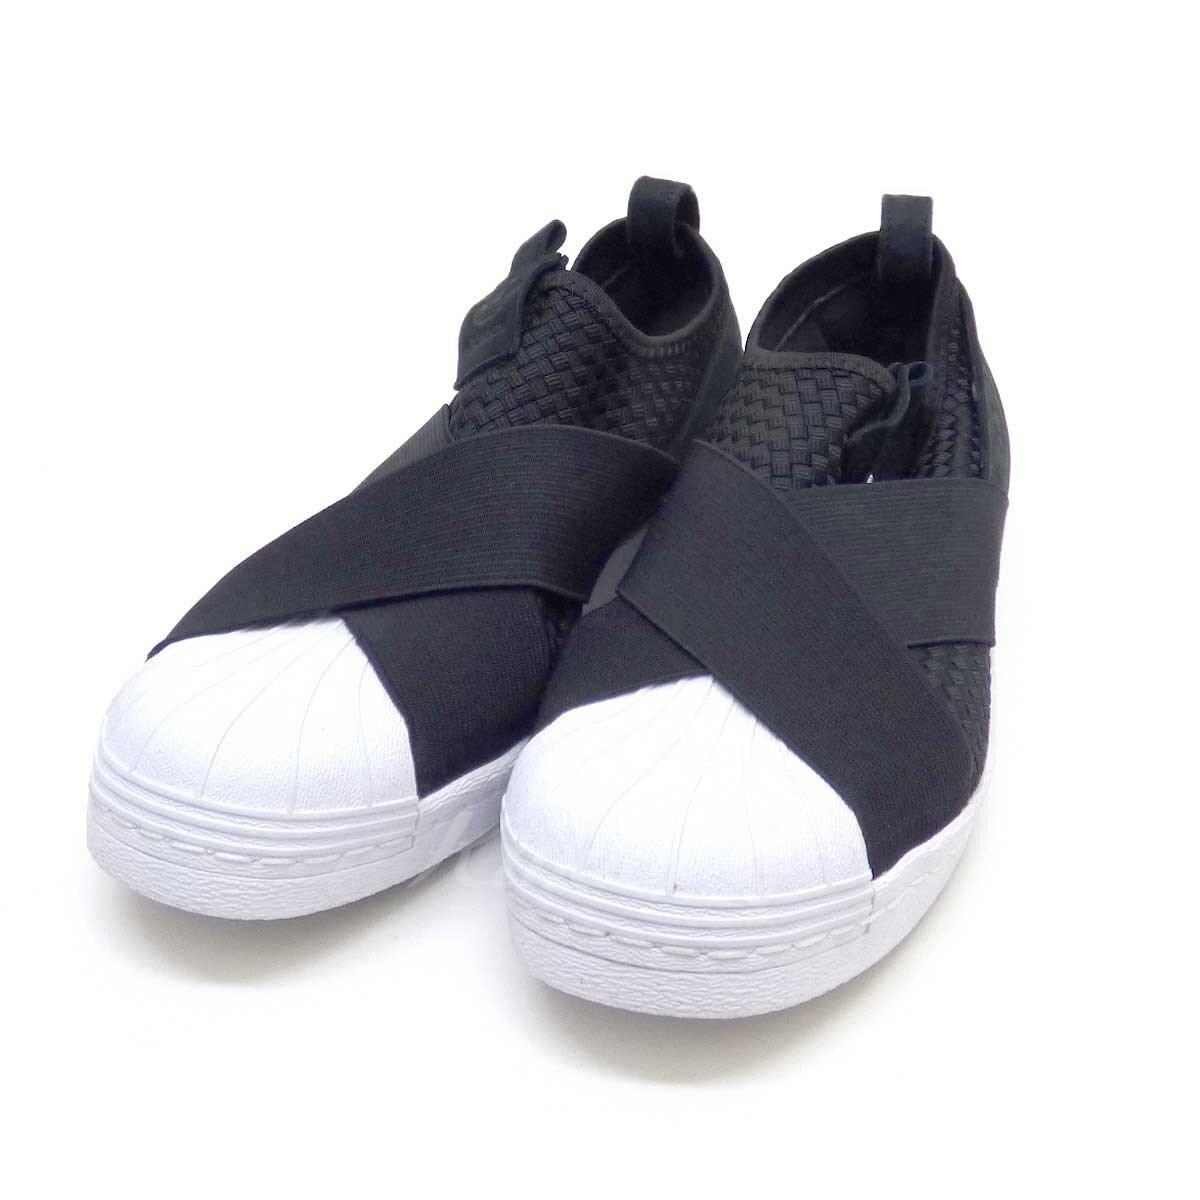 finest selection 702a6 20e09 adidas SUPERSTAR SLIP-ON sneakers 698007 black X white size: 26 (Adidas)